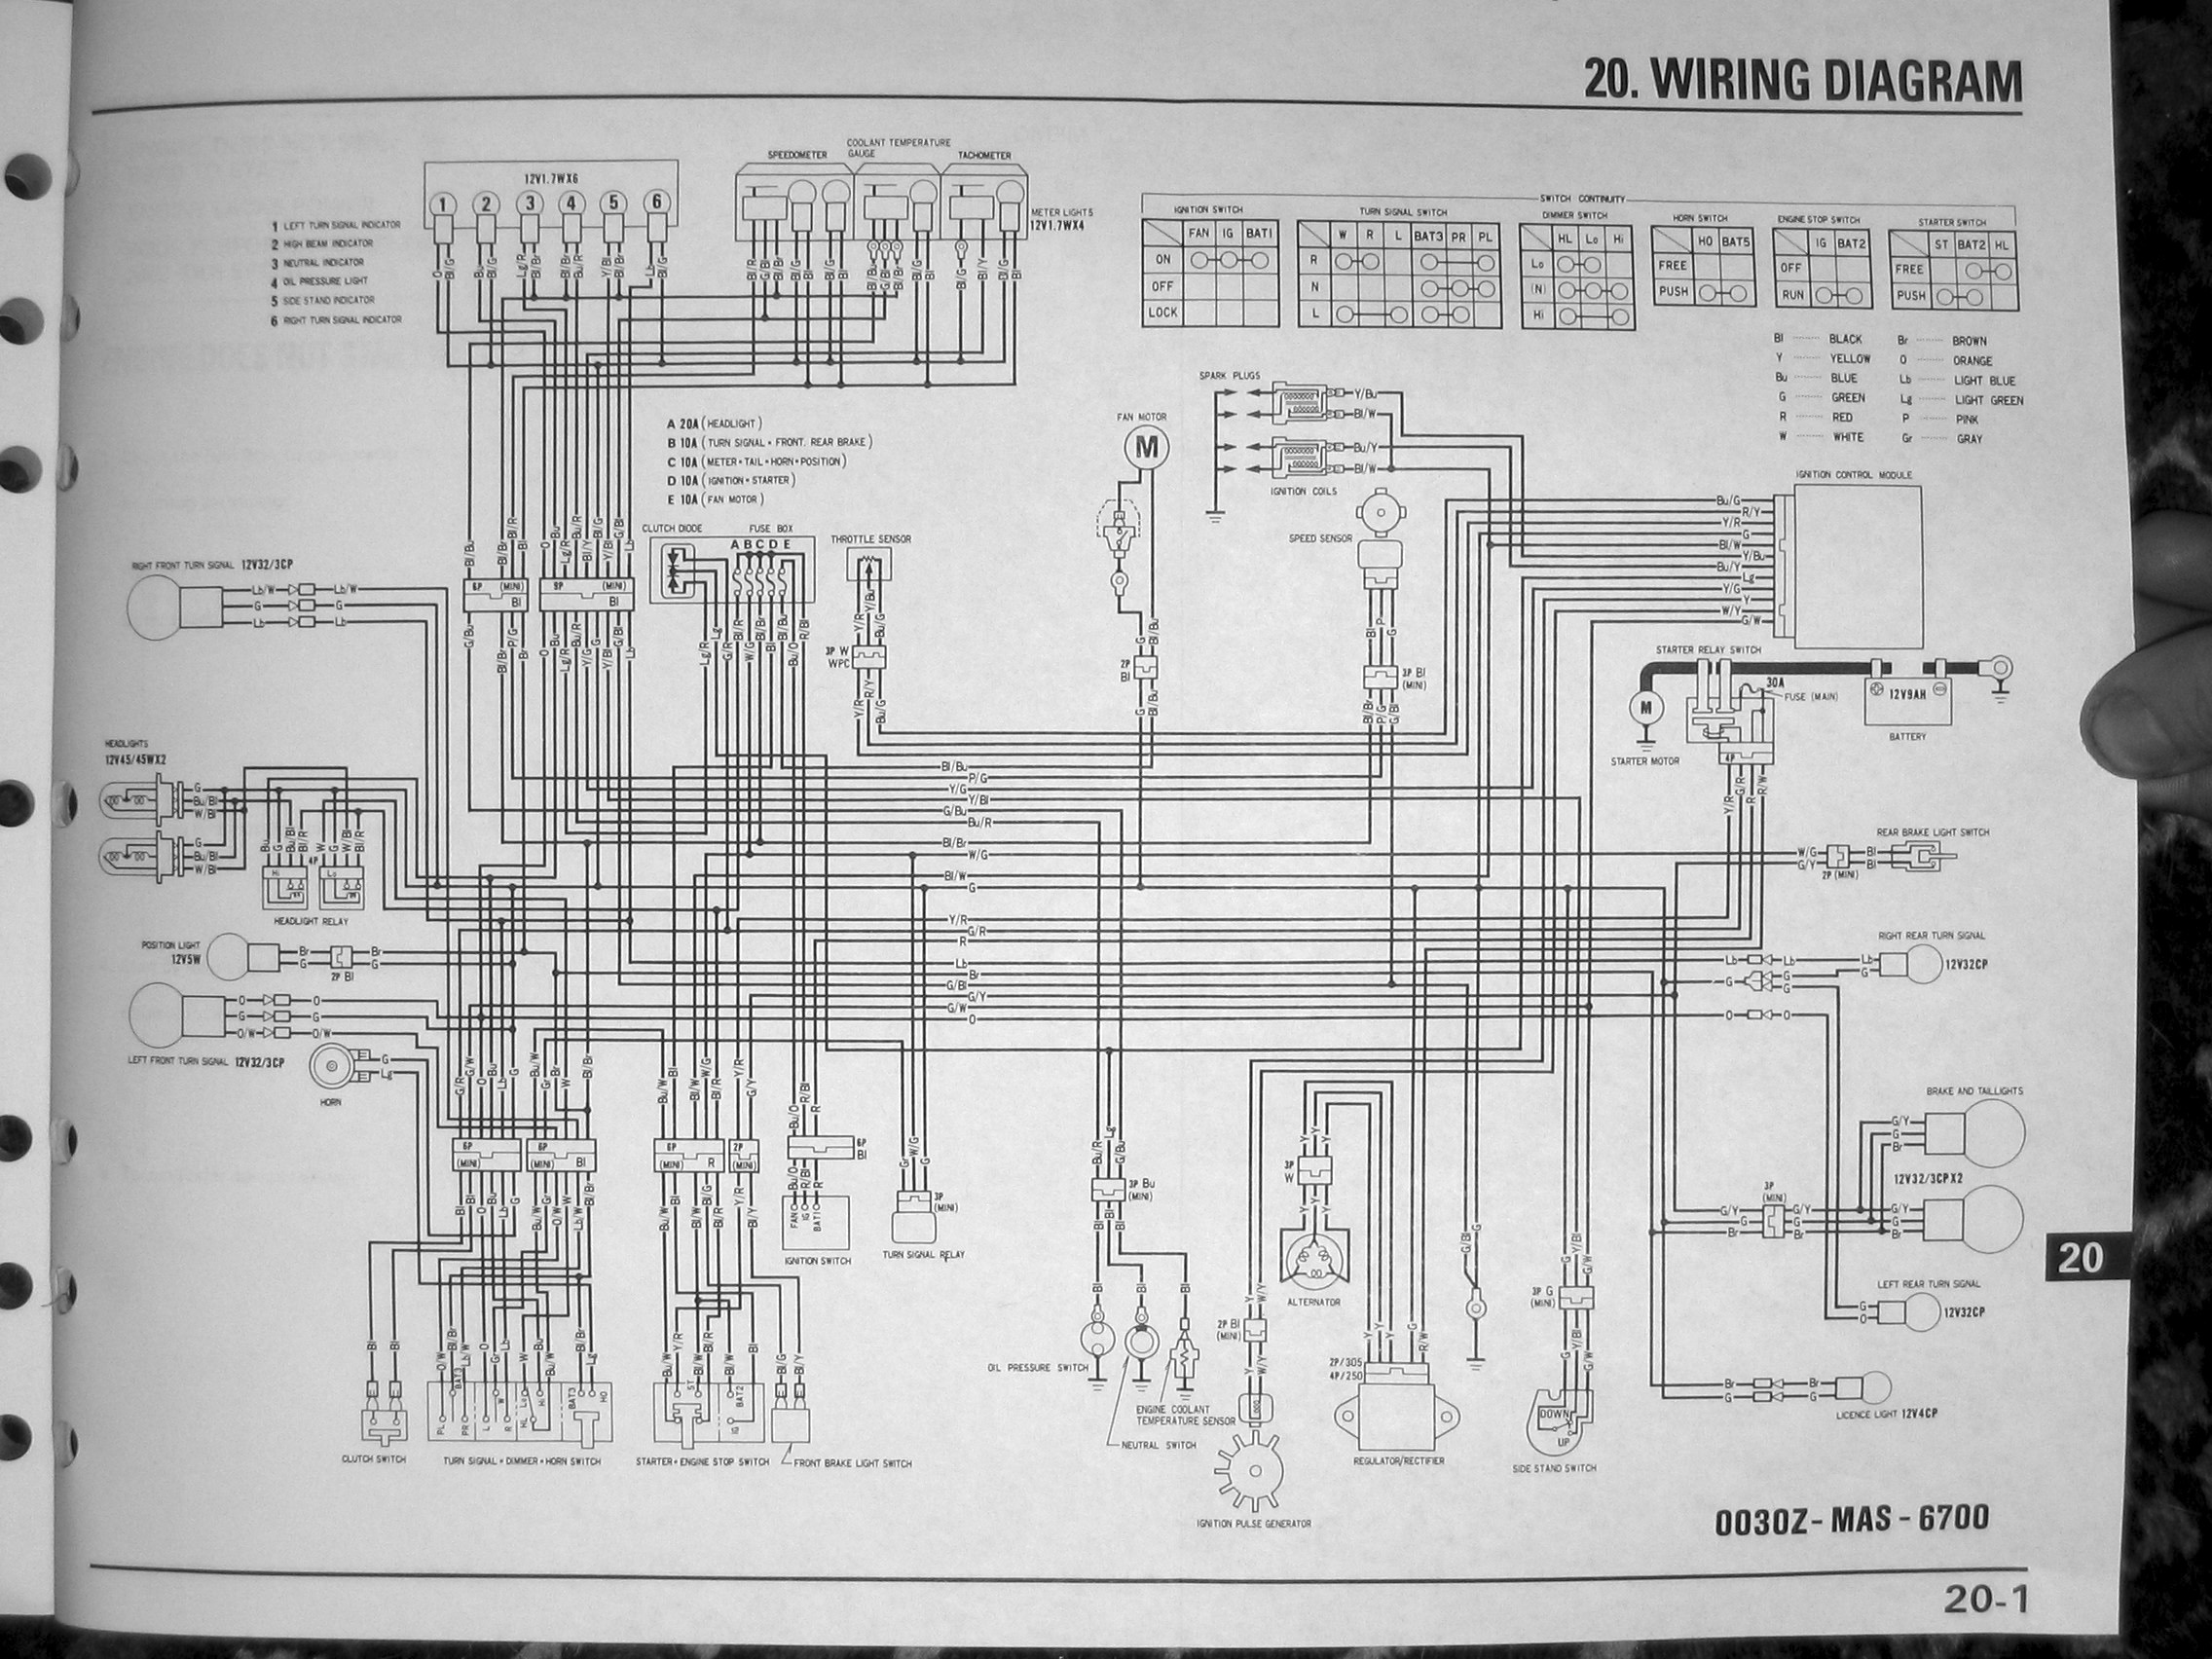 1996 Gsxr 1000 Wiring Diagram In Depth Diagrams 2005 2011 Suzuki Gsx R750 Dirty Weekend Hd 2001 600